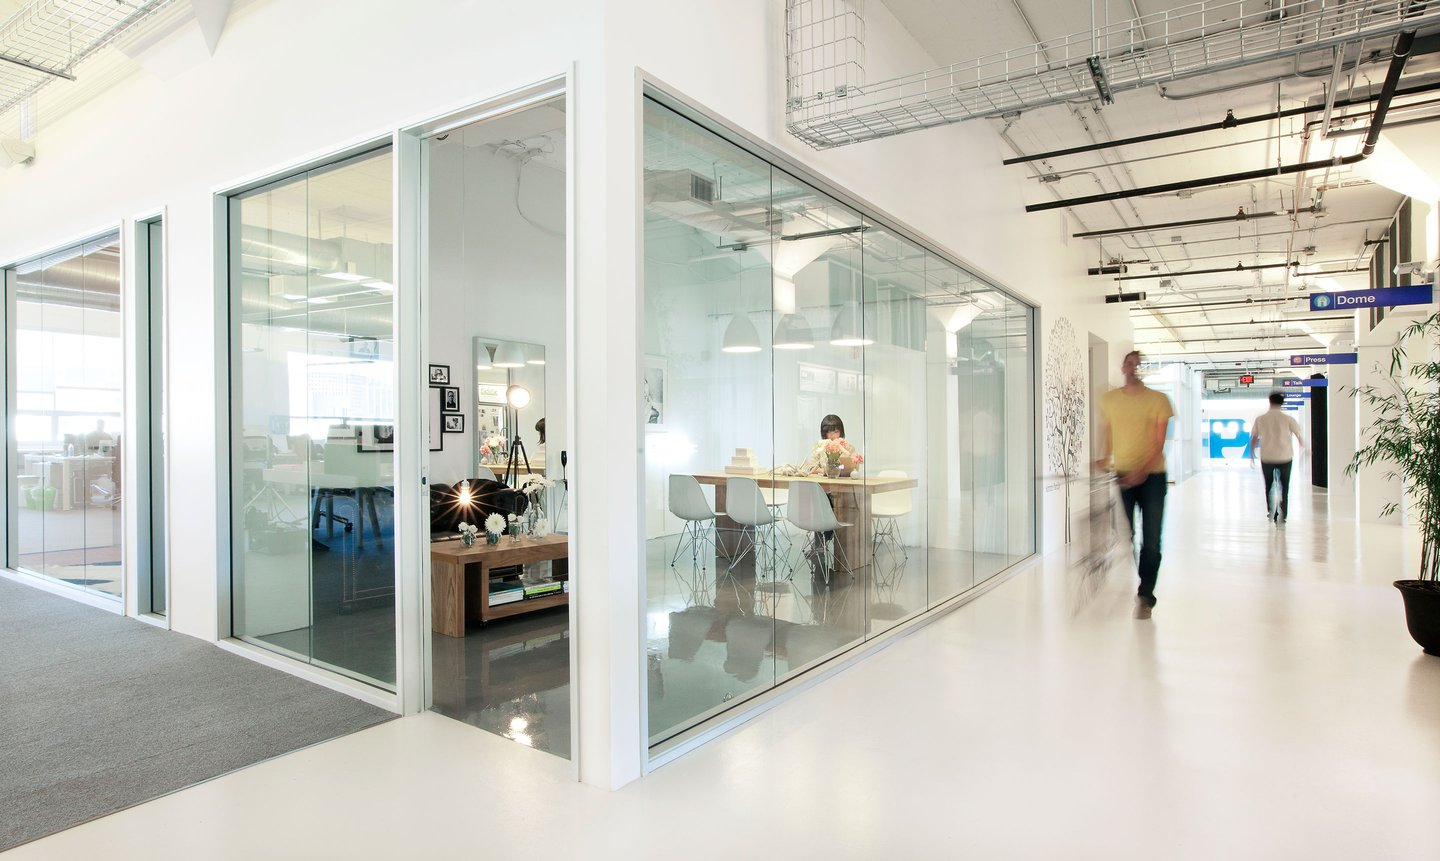 Phone room office space photos custom spaces - Airbnb